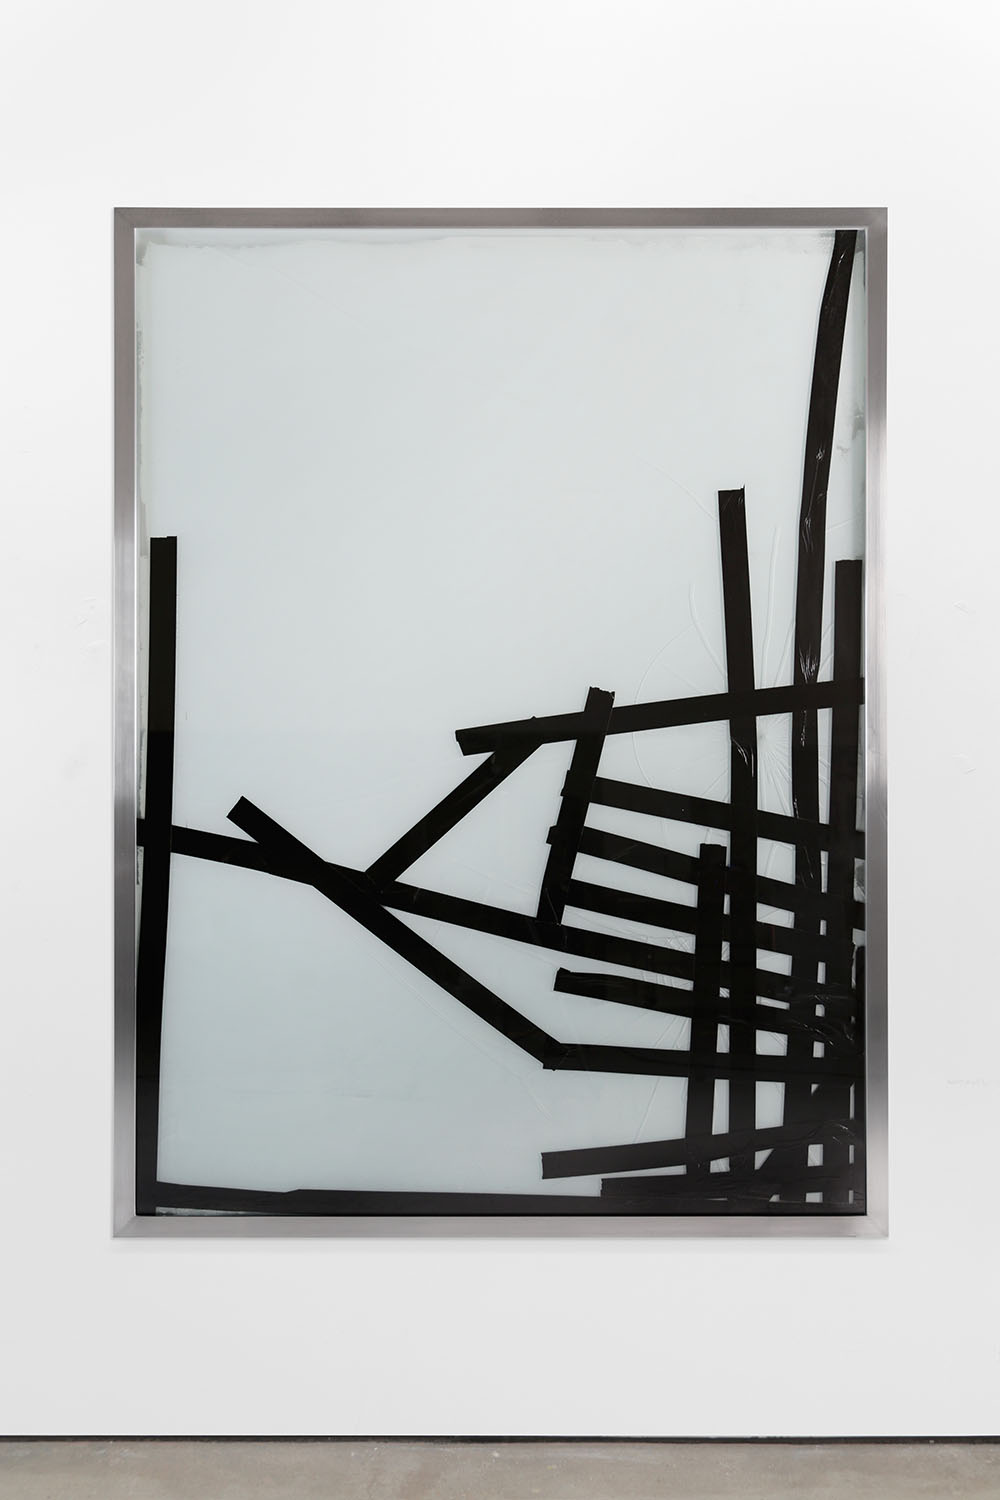 Ryan Gander, By physical or cognitive means (Broken Window Theory 25th March), 2019. Ink on paper, emulsion paint, aluminium frame, reinforced broken glass, duct tape 180 x 135 x 7 cm 70 3/4 x 53 1/8 x 2 3/4 in © Ryan Gander. Courtesy Lisson Gallery